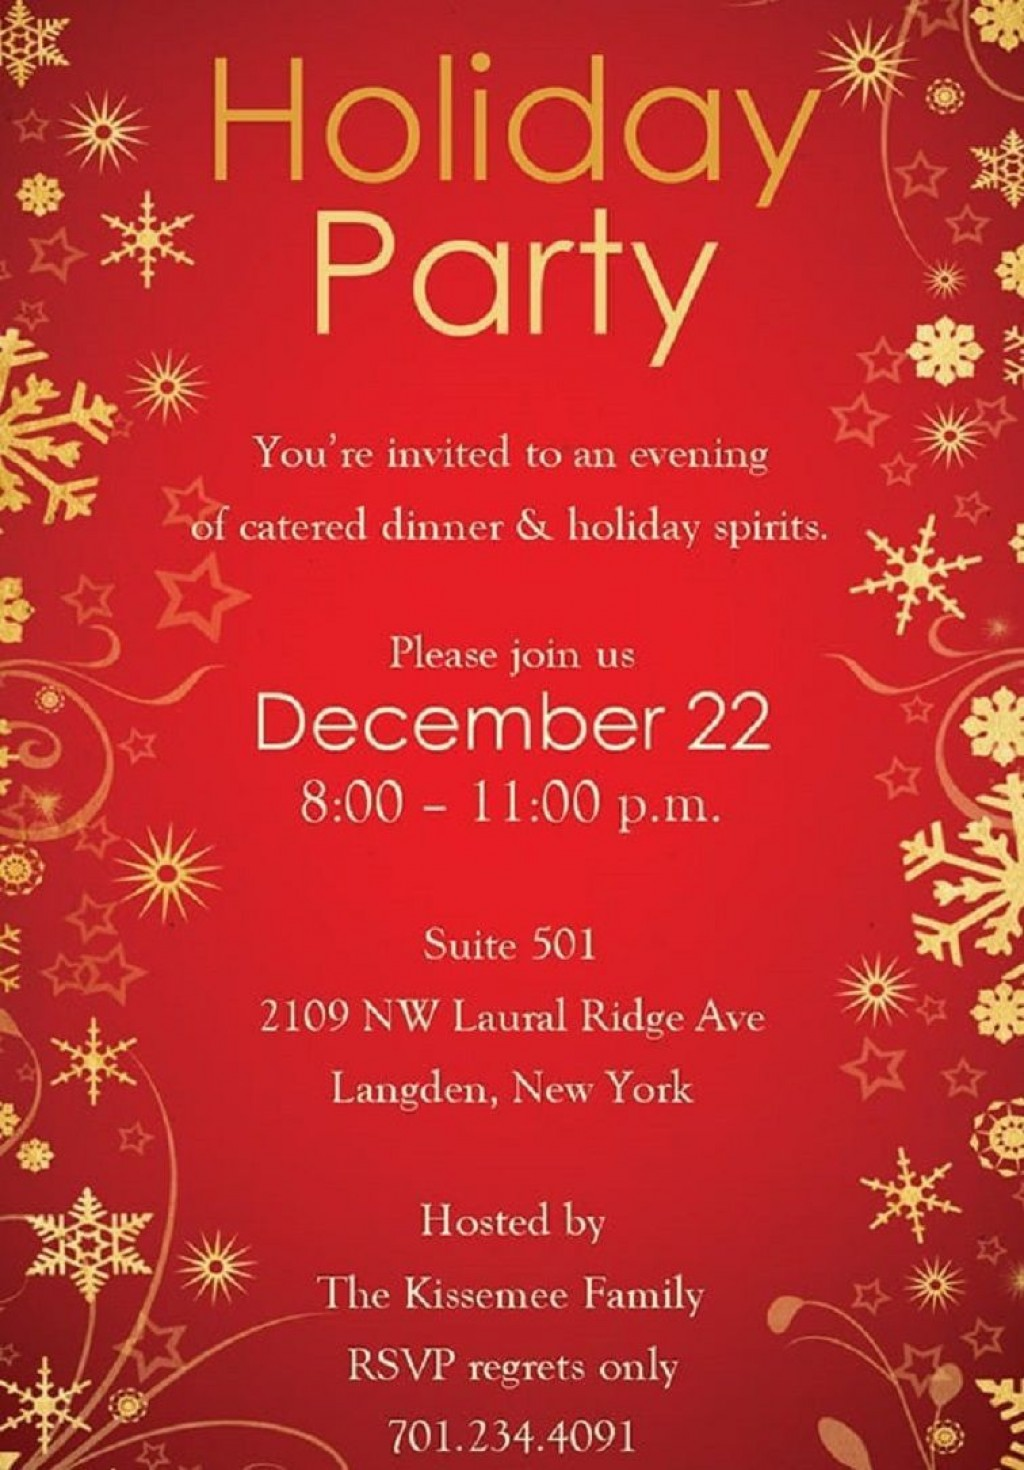 000 Excellent Free Holiday Party Invitation Template Design  Templates Printable Downloadable Christma OnlineLarge